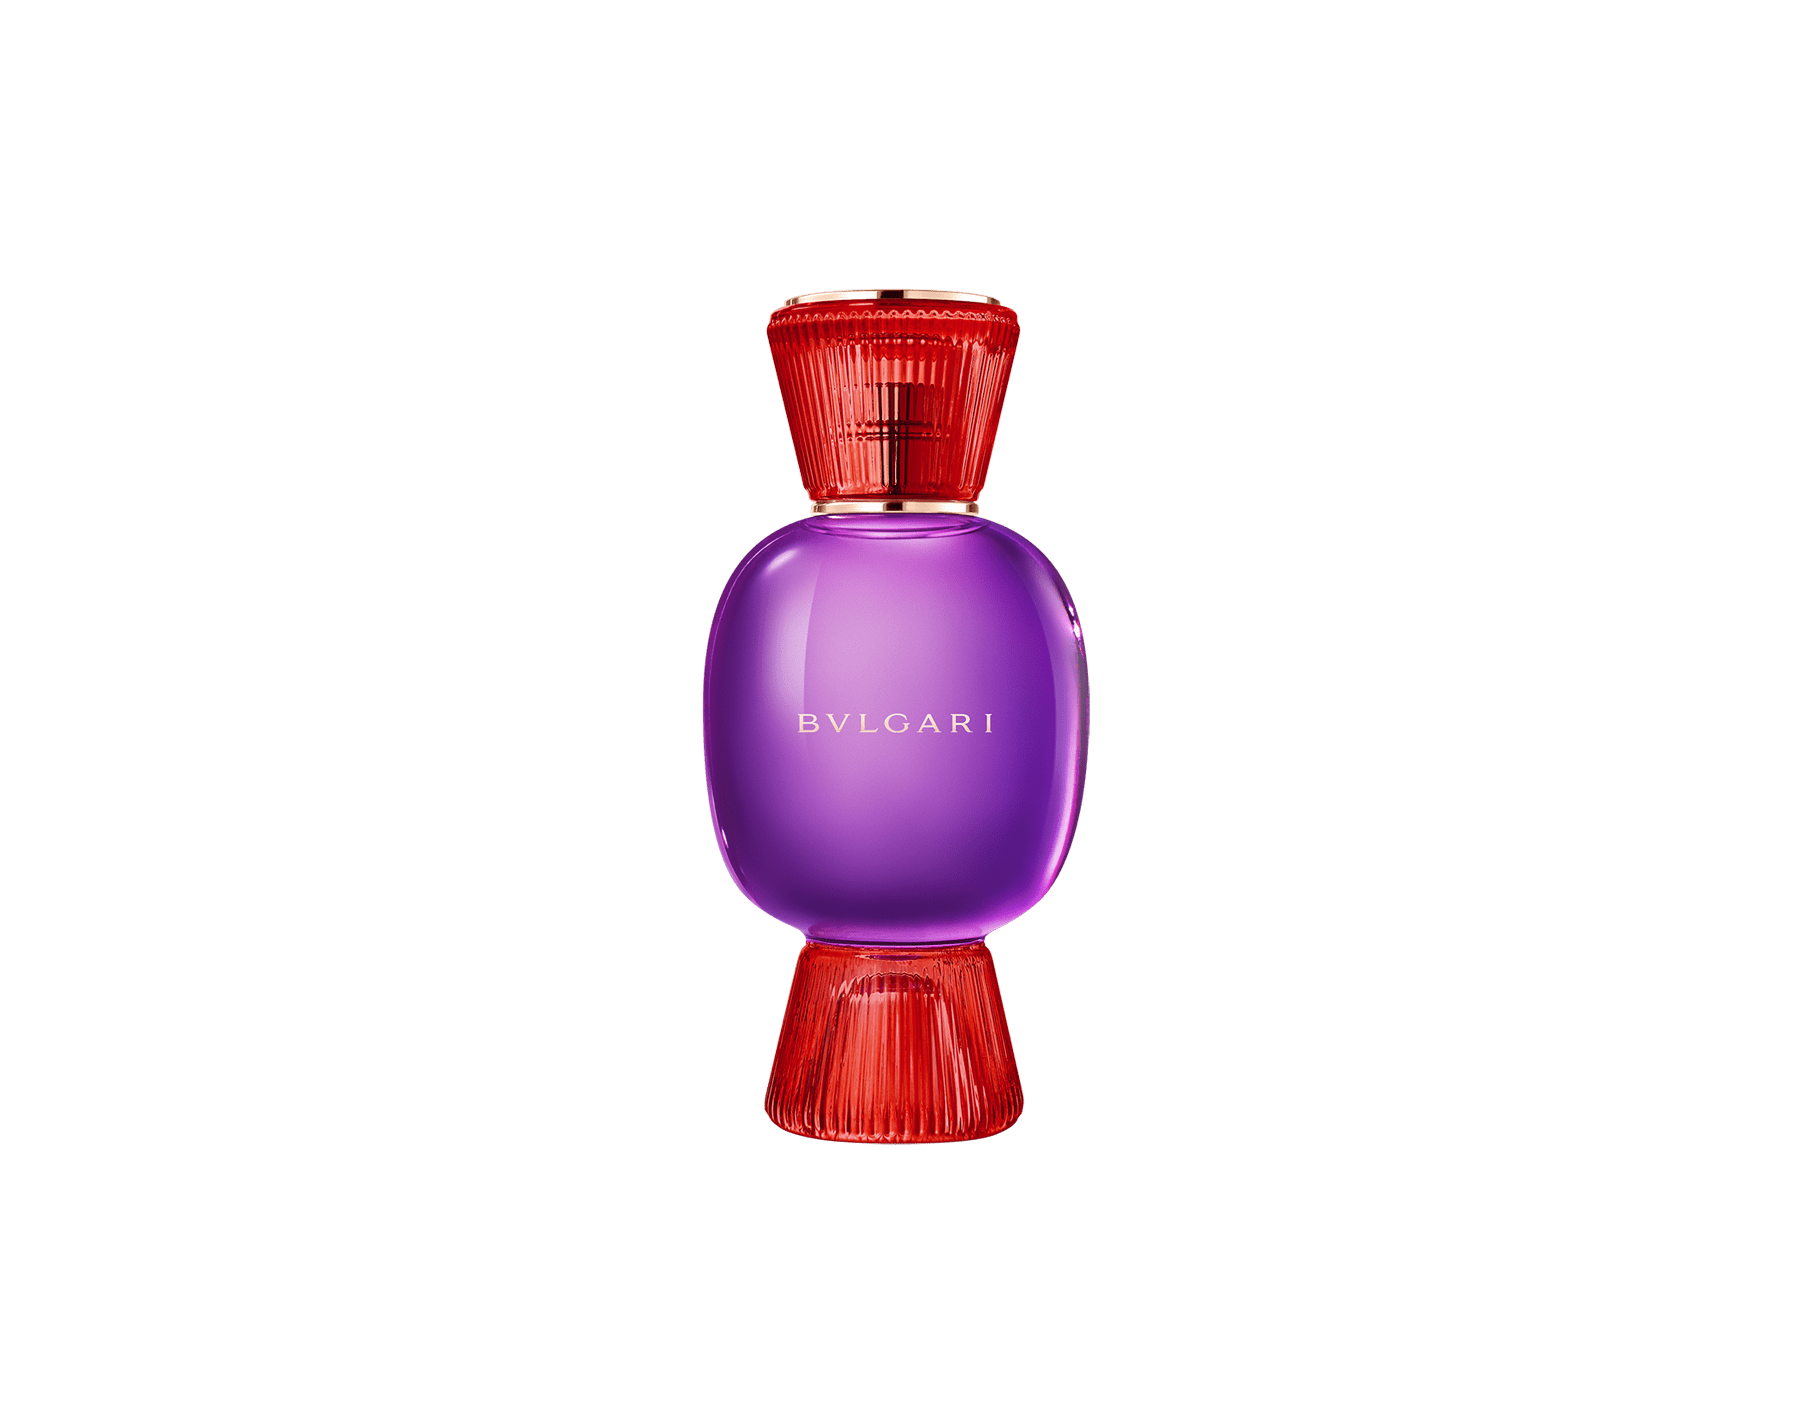 An exclusive perfume set, as bold and unique as you. The festive chypre Fantasia Veneta Allegra Eau de Parfum blends with the stark sensuality of the Magnifying Patchouli Essence, creating an irresistible personalised women's perfume. Perfume-Set-Fantasia-Veneta-Eau-de-Parfum-and-Patchouli-Magnifying image 2